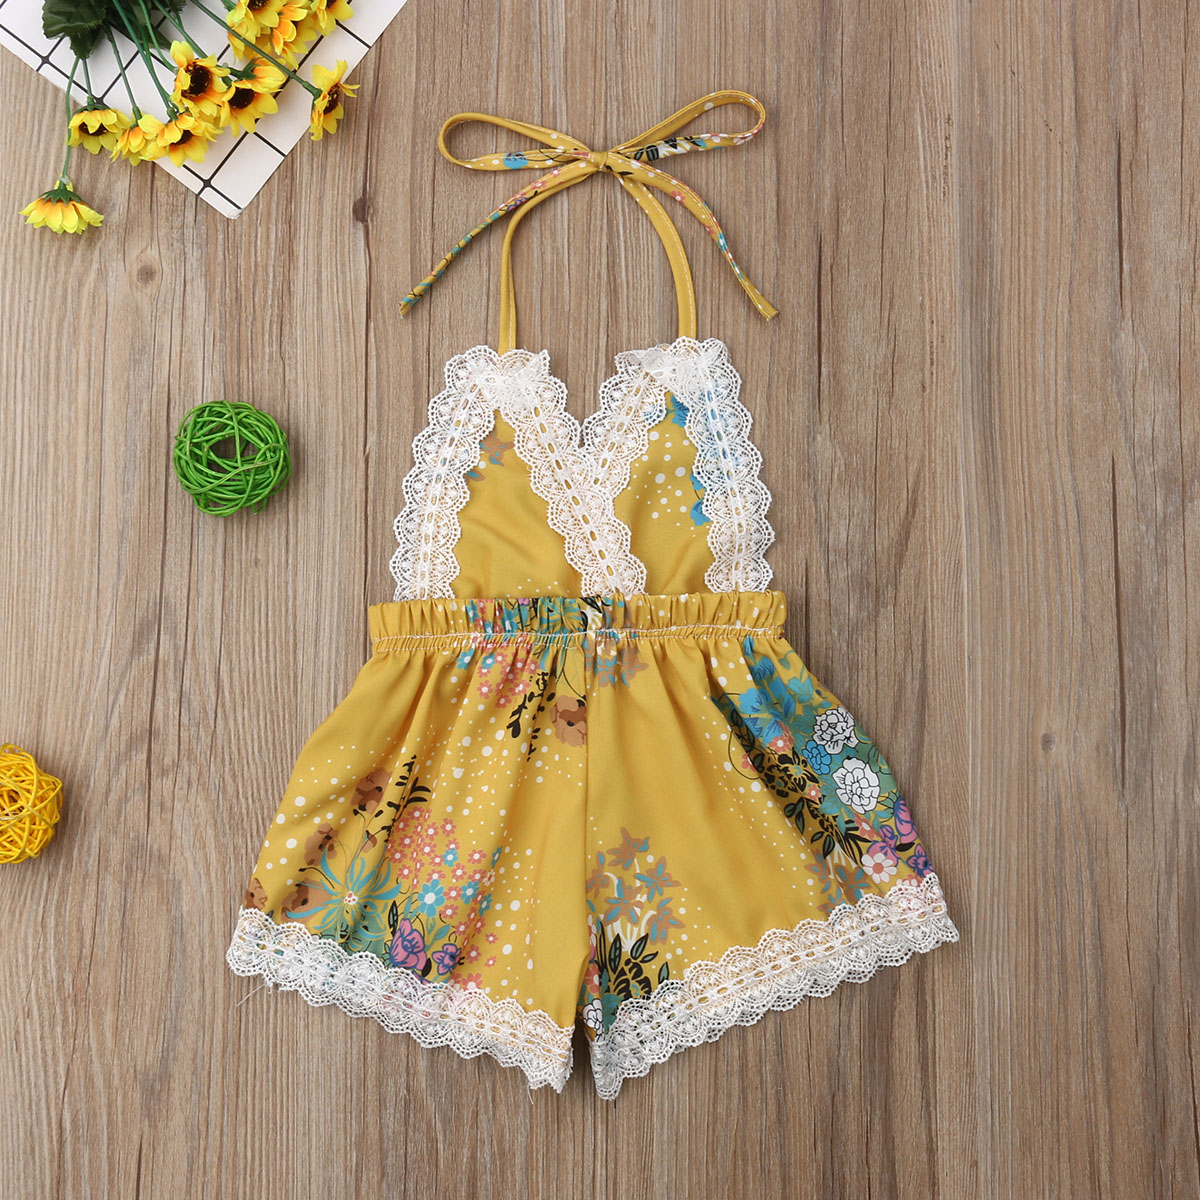 Newborn Baby Girl Lace Flower Print Sleeveless Backless   Romper   Jumpsuit Summer Outfit Clothes